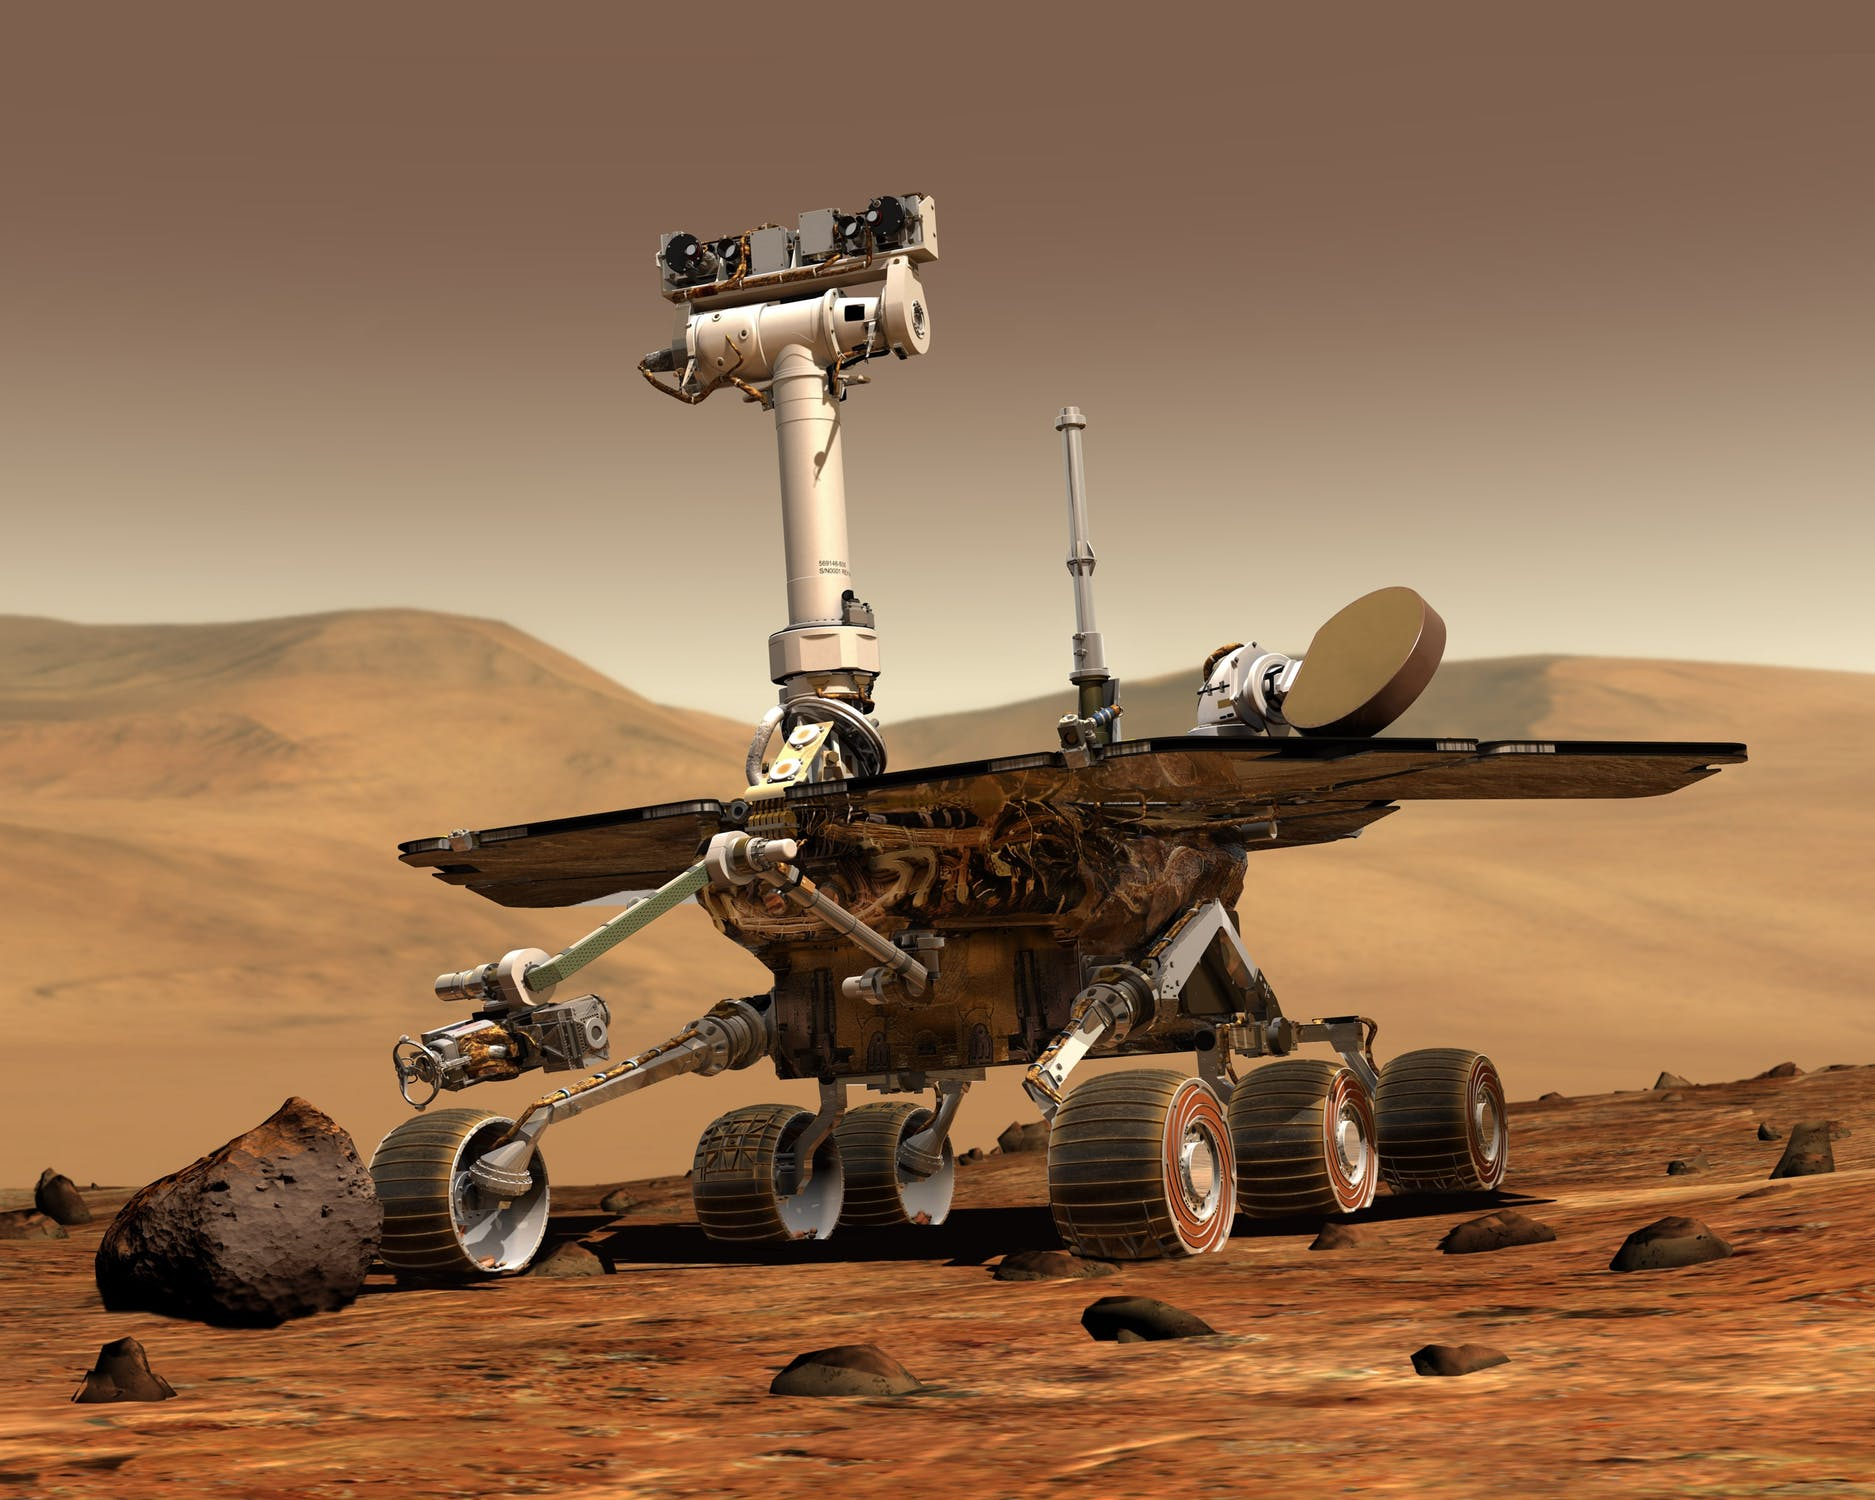 Rover on Mars